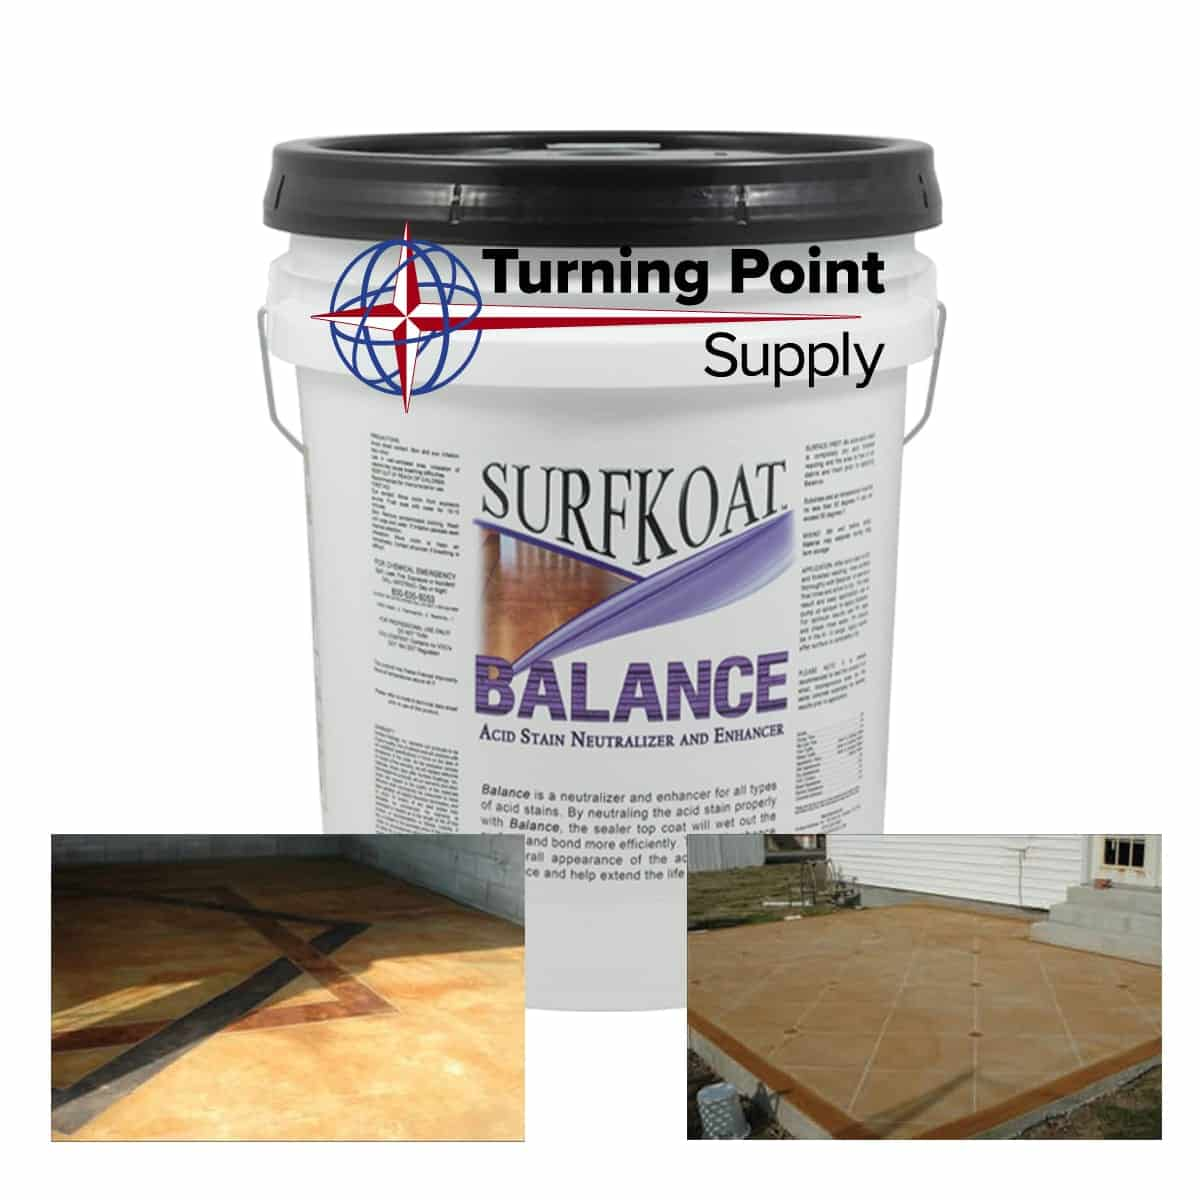 Balance Neutralizing Agent and Acid Stain Enhancer South Carolina North Carolina